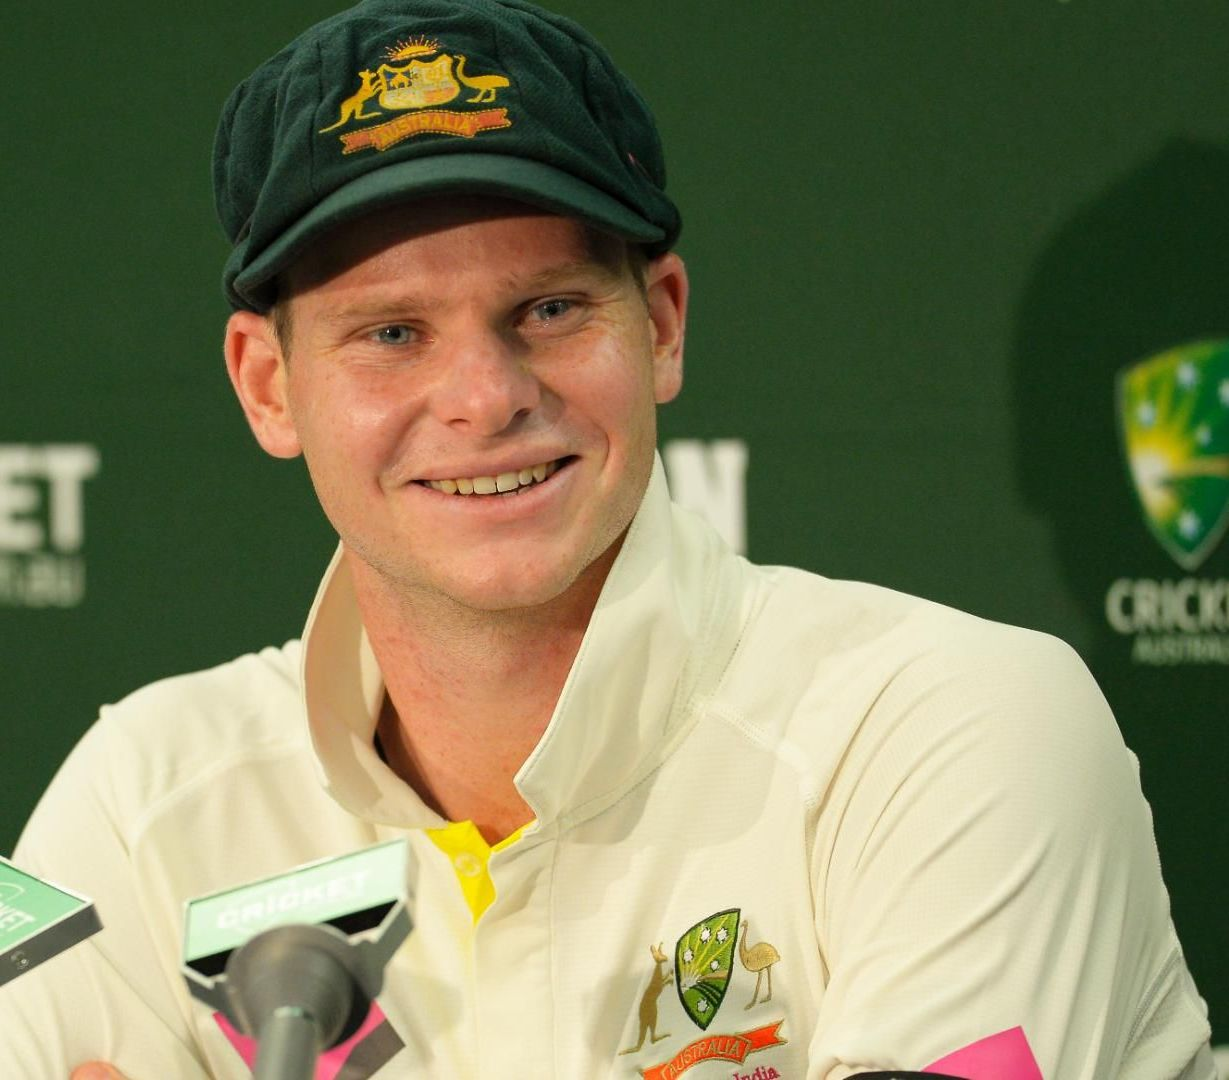 Steve Smith looking forward to playing against Kagiso Rabada and Morne Morkel